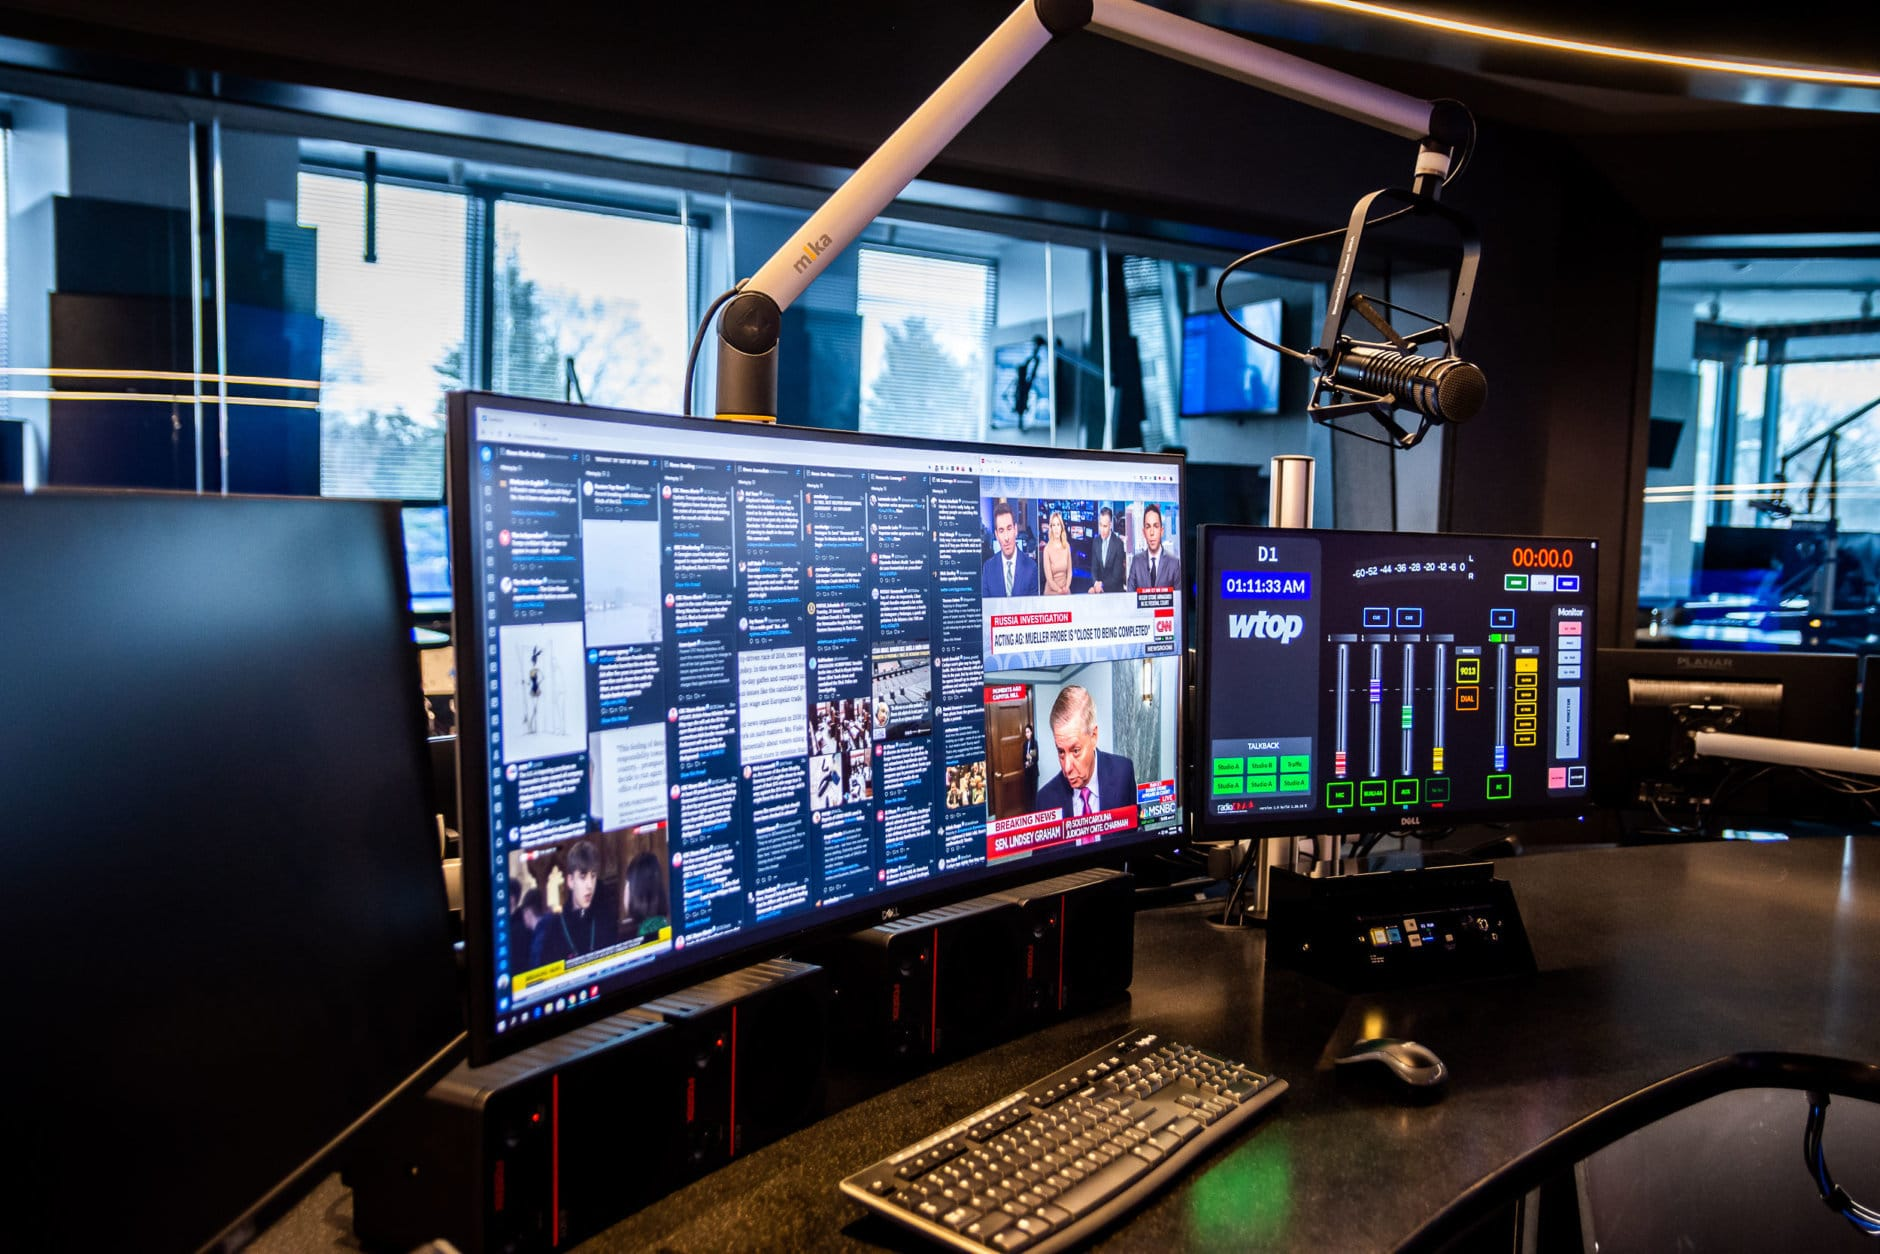 The Digital Editor is in charge of overseeing the minute-to-minute coverage of WTOP.com, deciding what stories go on the homepage, editing stories and coordinating with management, radio editors and reporters how stories will be presented online. Pictured is the new Digital Editor's desk, serving as the center of operations for WTOP's website, mobile apps and social media feeds. It comes equipped with a 34-inch curved ultrawide monitor — for a digital editor, there's no such thing as too much screen space. (WTOP/Alejandro Alvarez)